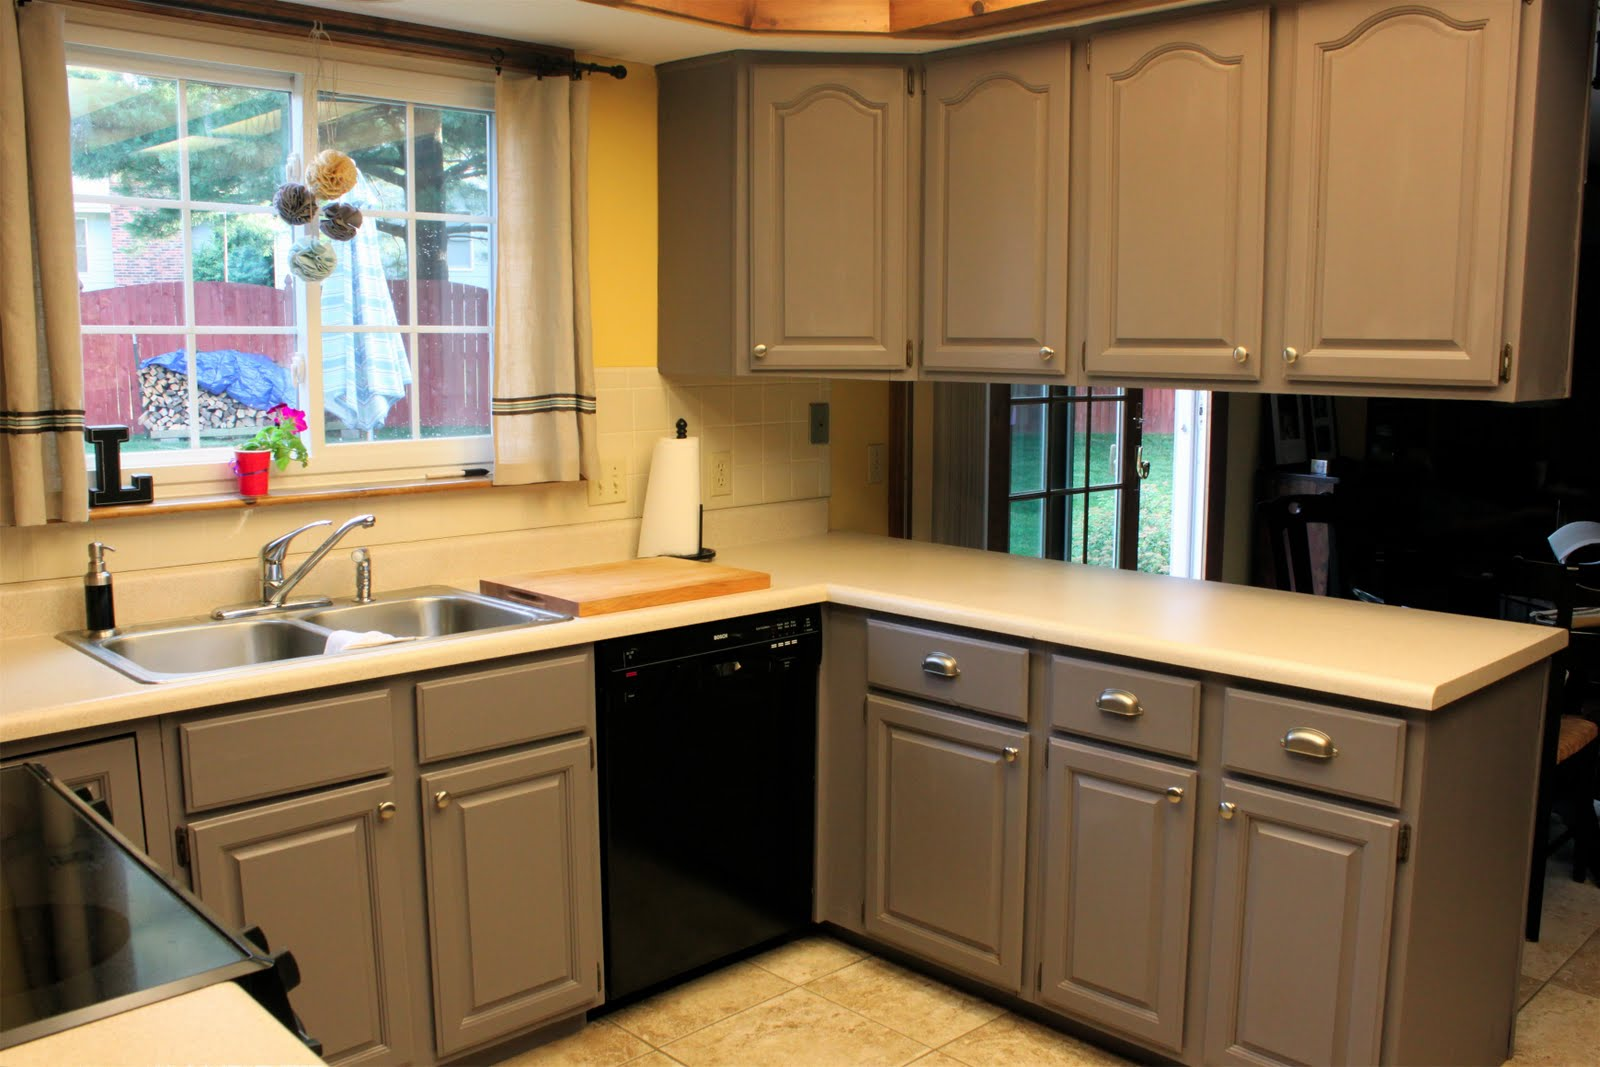 645 workshop by the crafty cpa work in progress painting kitchen cabinets - Painted kitchen cabinets ideas ...